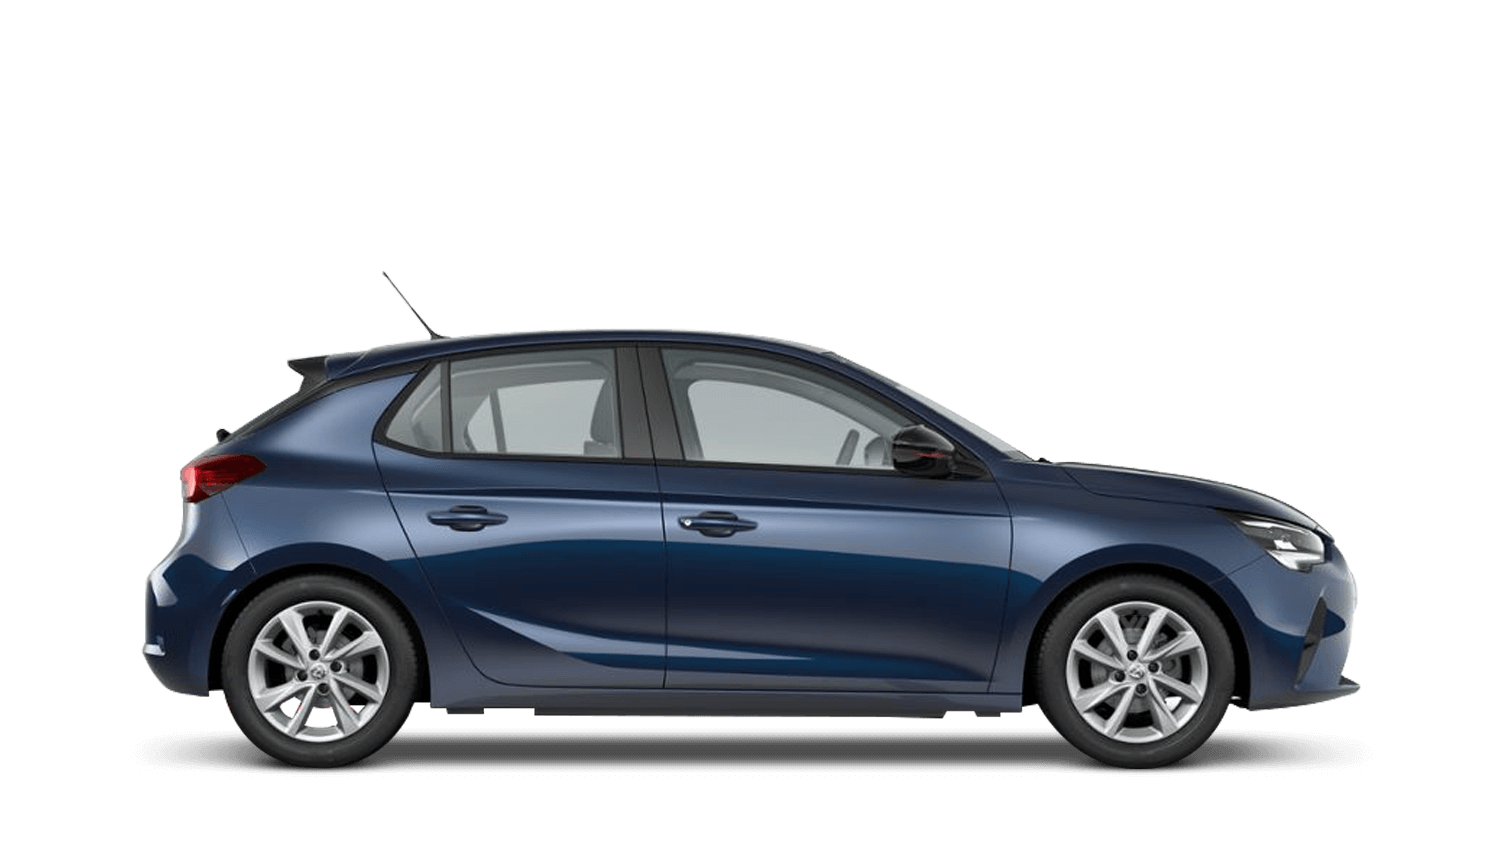 Navy Blue (Metallic) All-New Vauxhall Corsa